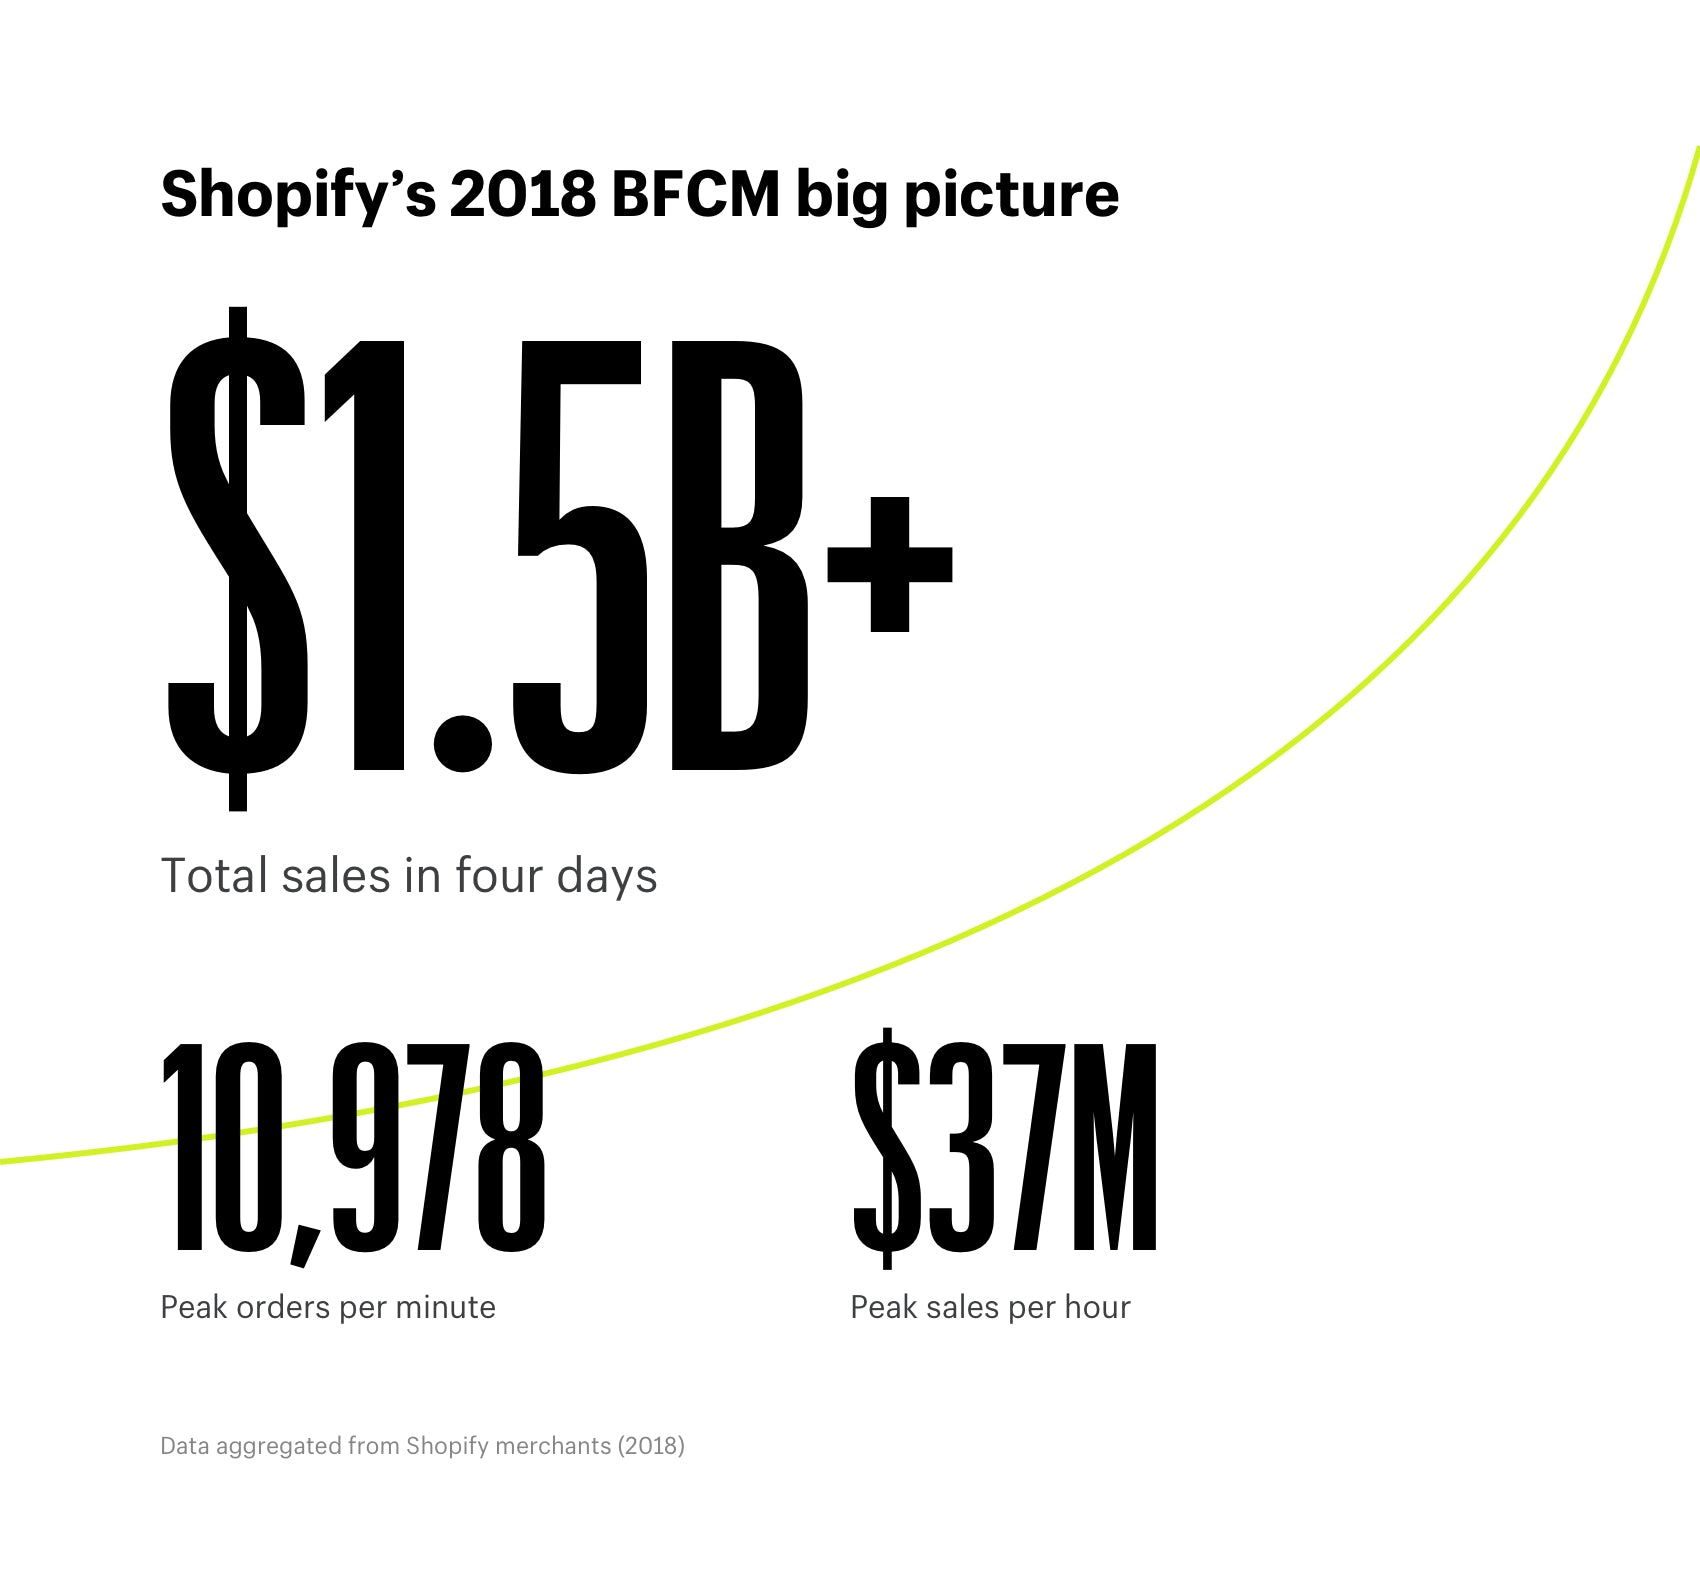 Shopify's 2018 Black Friday Cyber Monday big picture